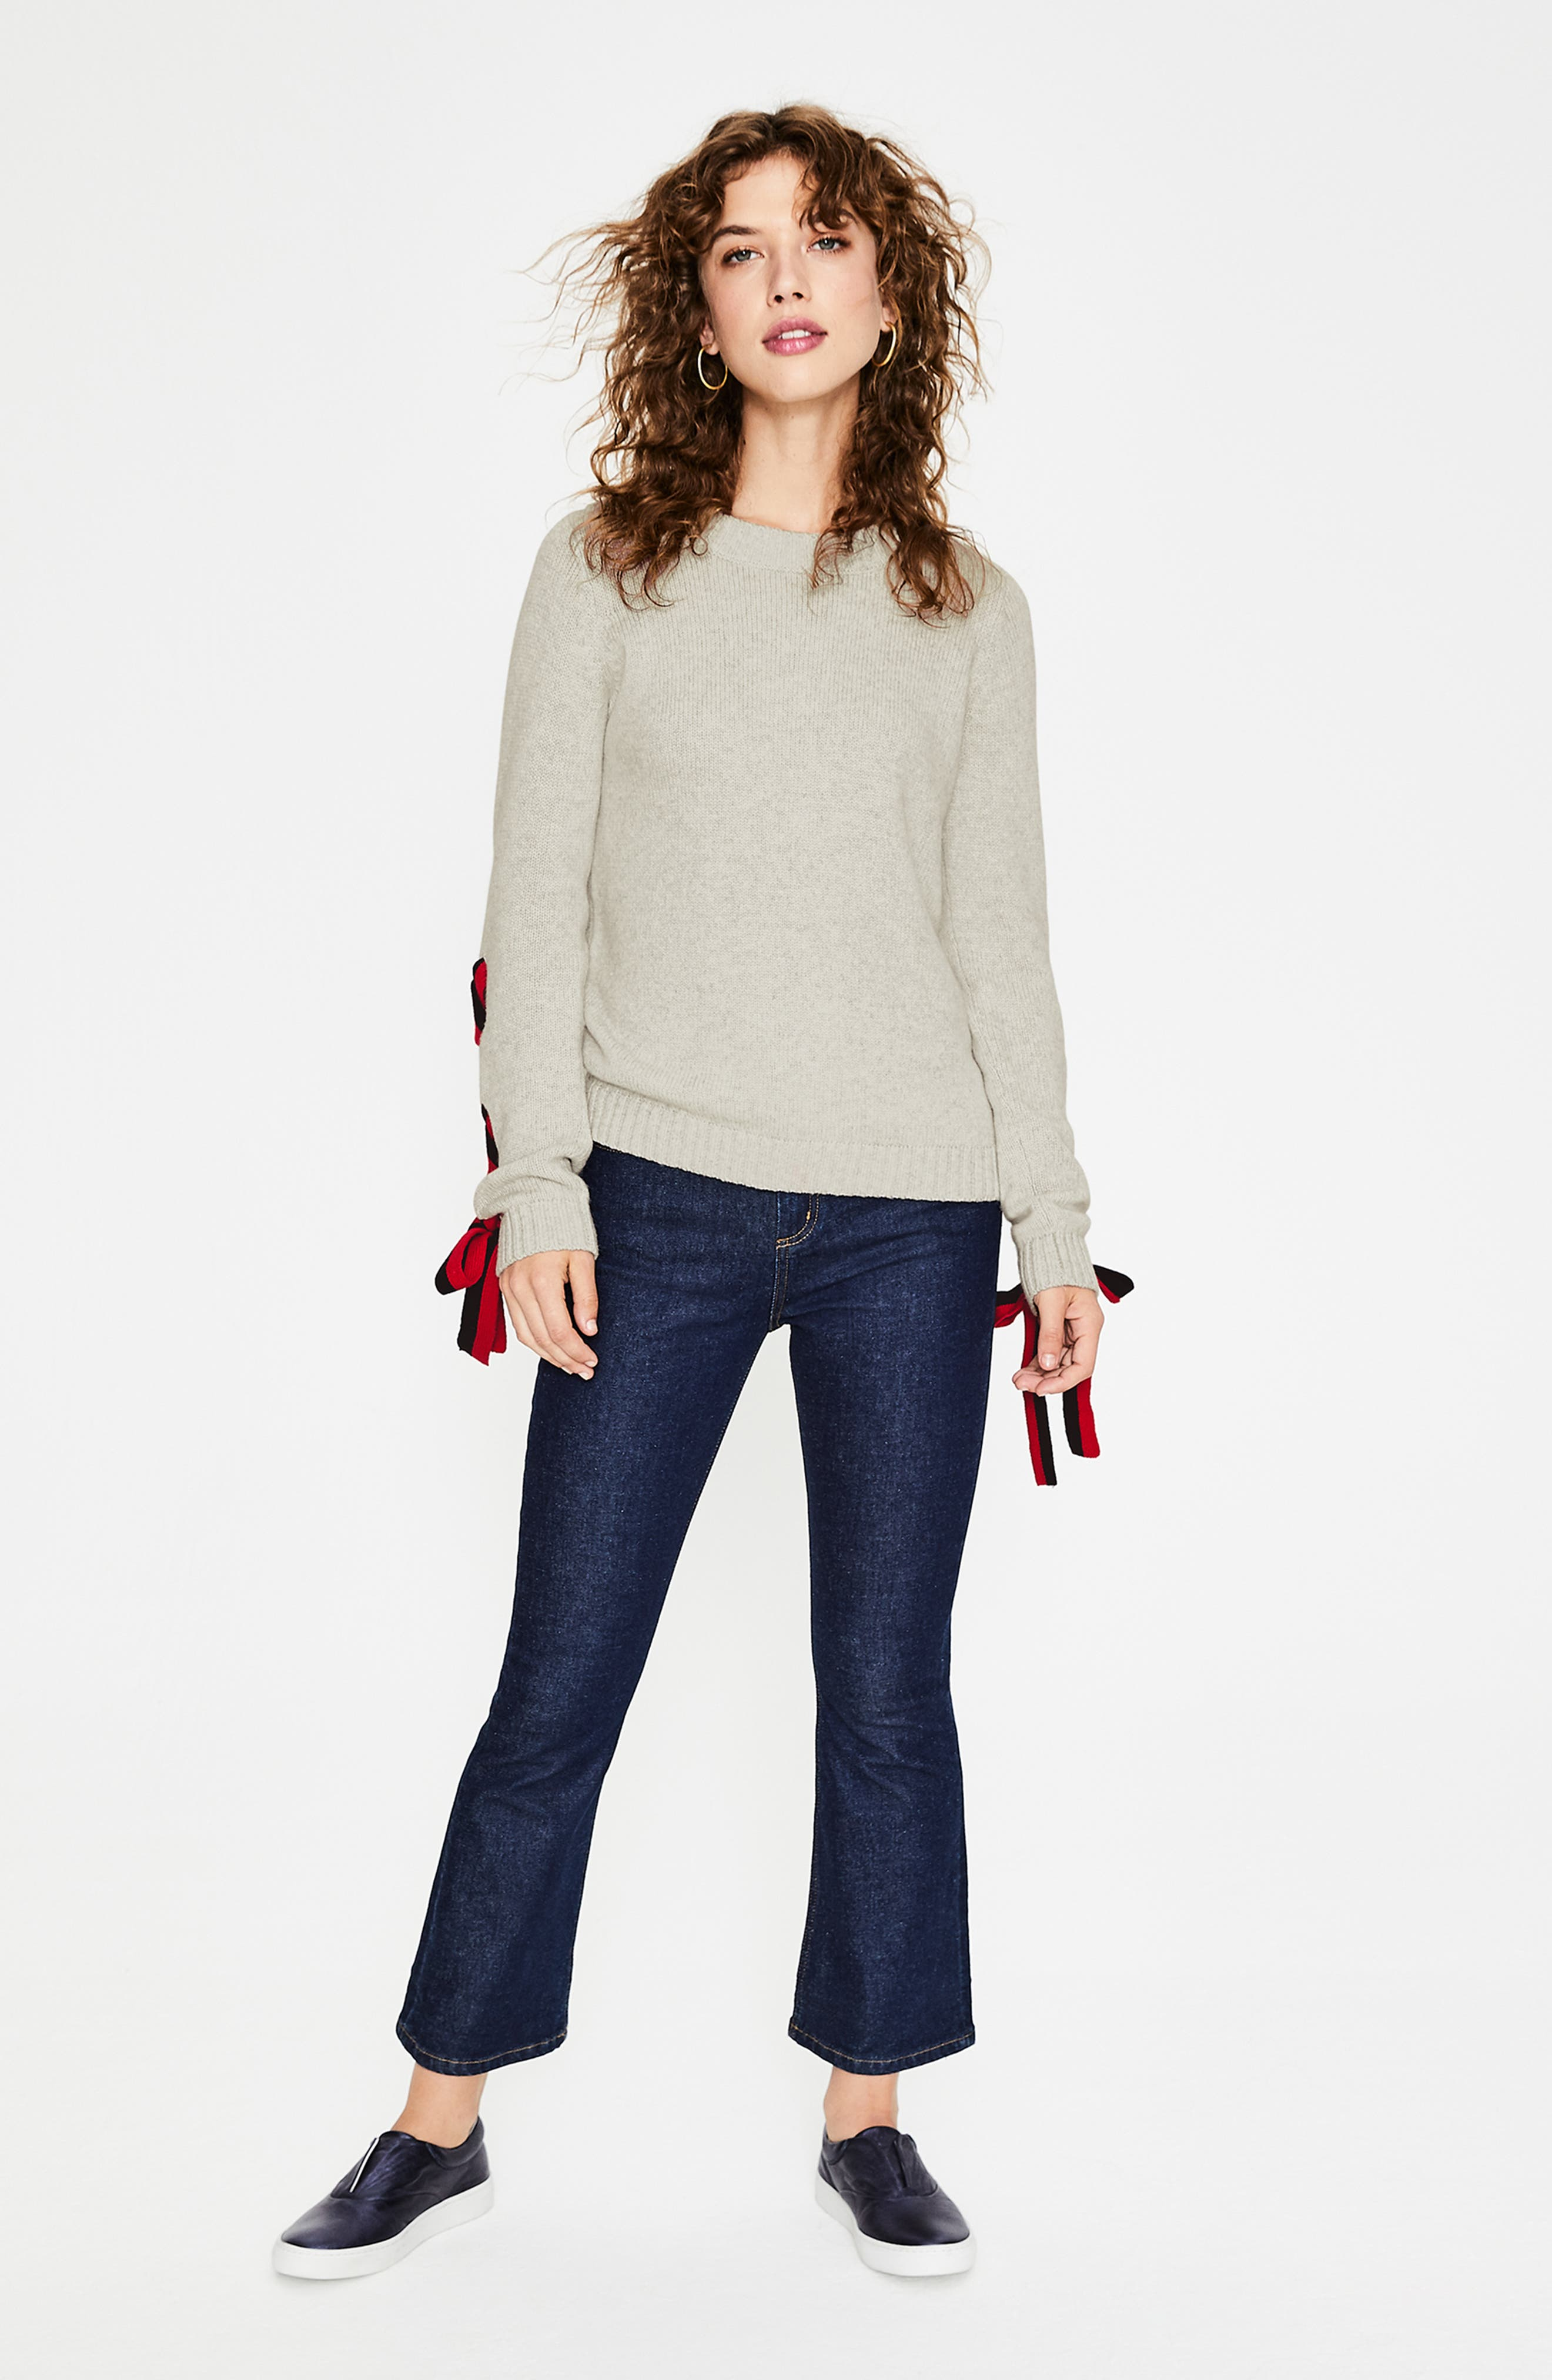 BODEN,                             Angelica Sweater,                             Alternate thumbnail 6, color,                             042